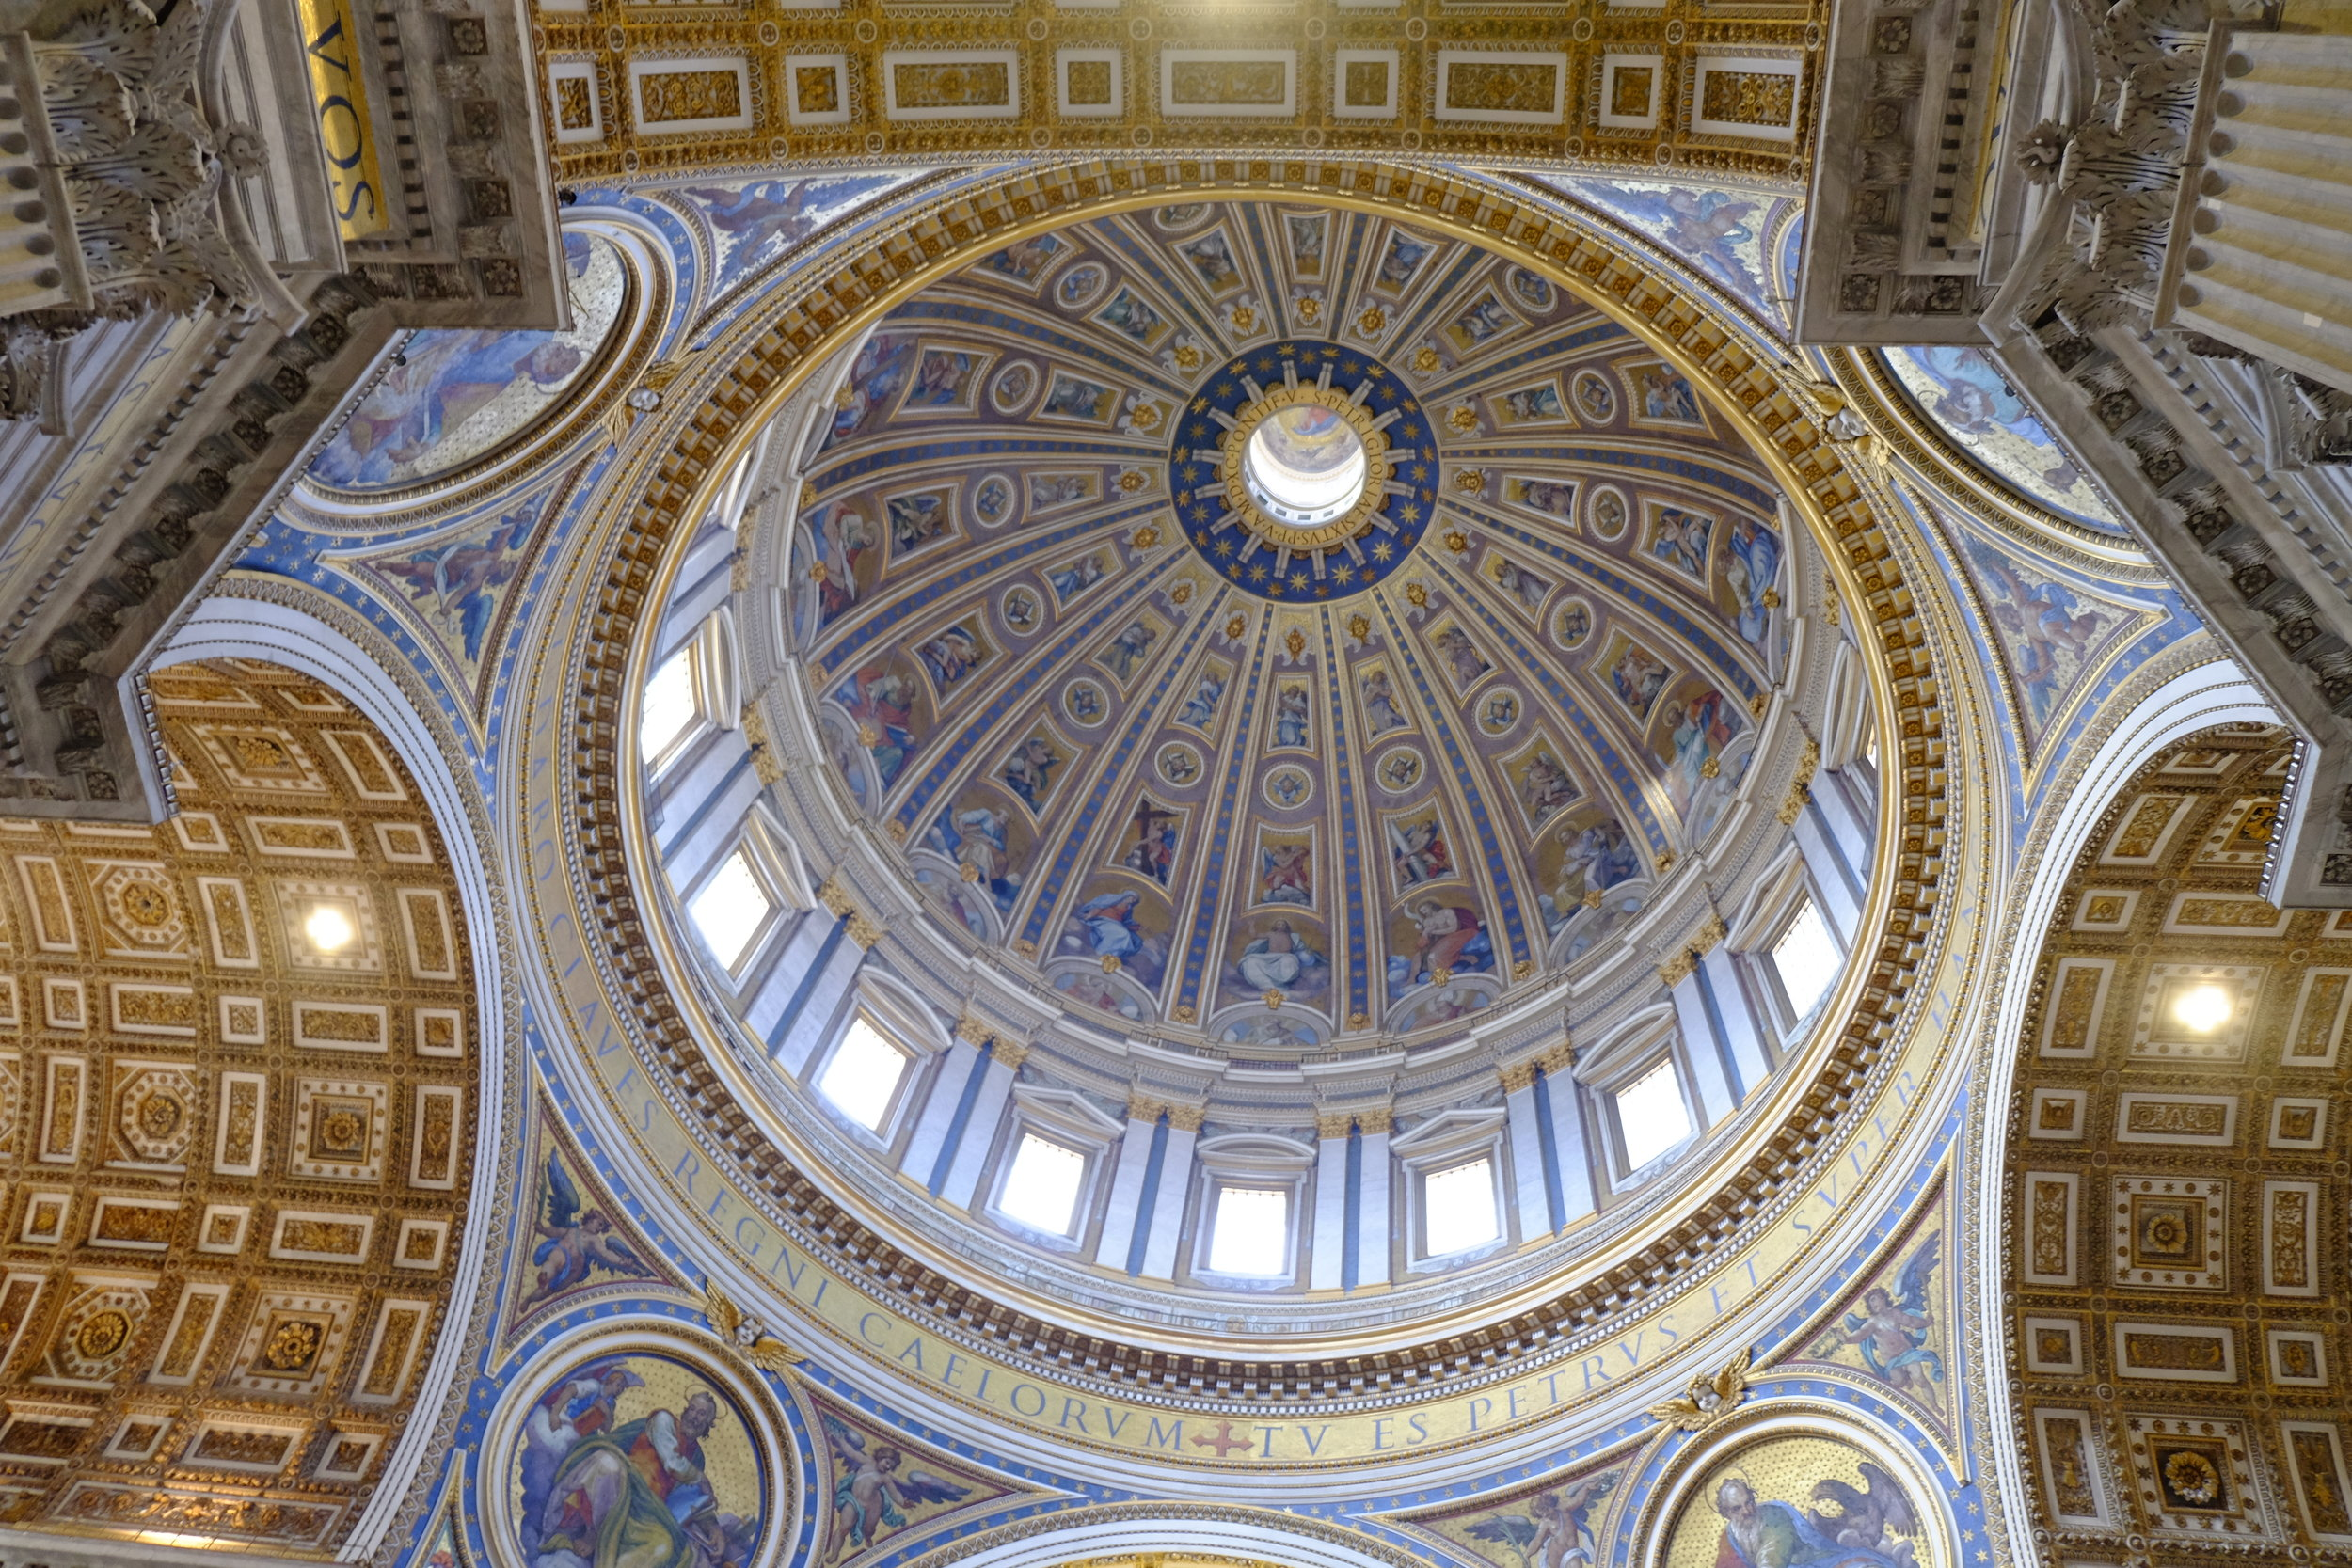 View into the Dome of St. Peter.